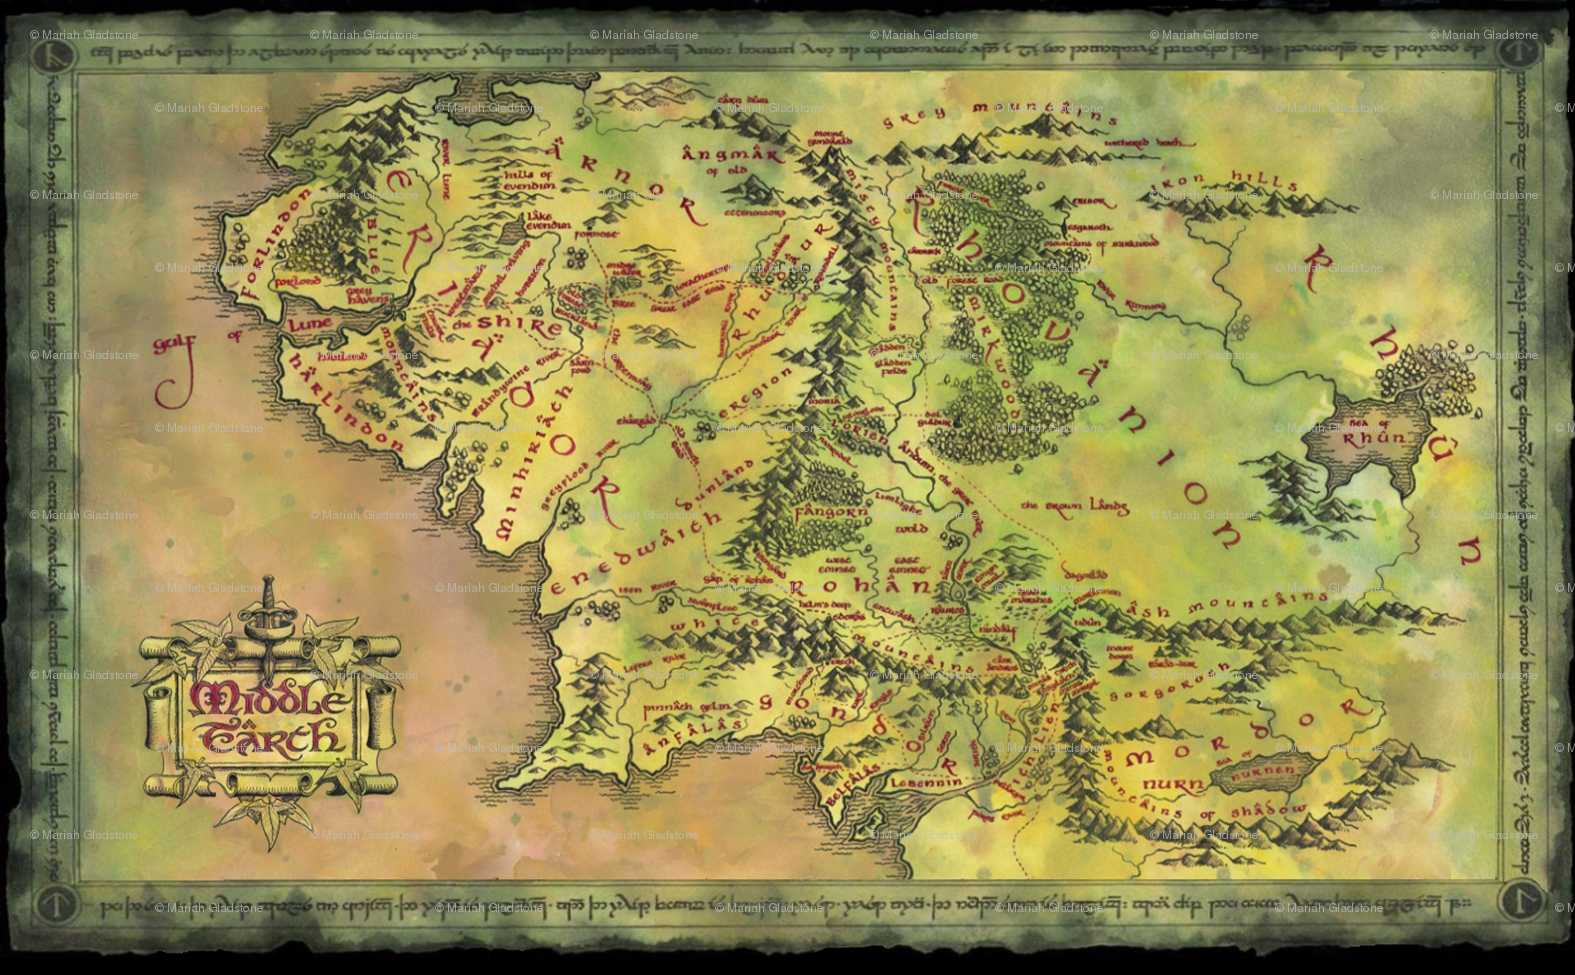 Alternatemiddleearthmaphighresg 1575975 pixels middle lord of the rings classic map retro vintage poster print wall art large maxi gumiabroncs Images